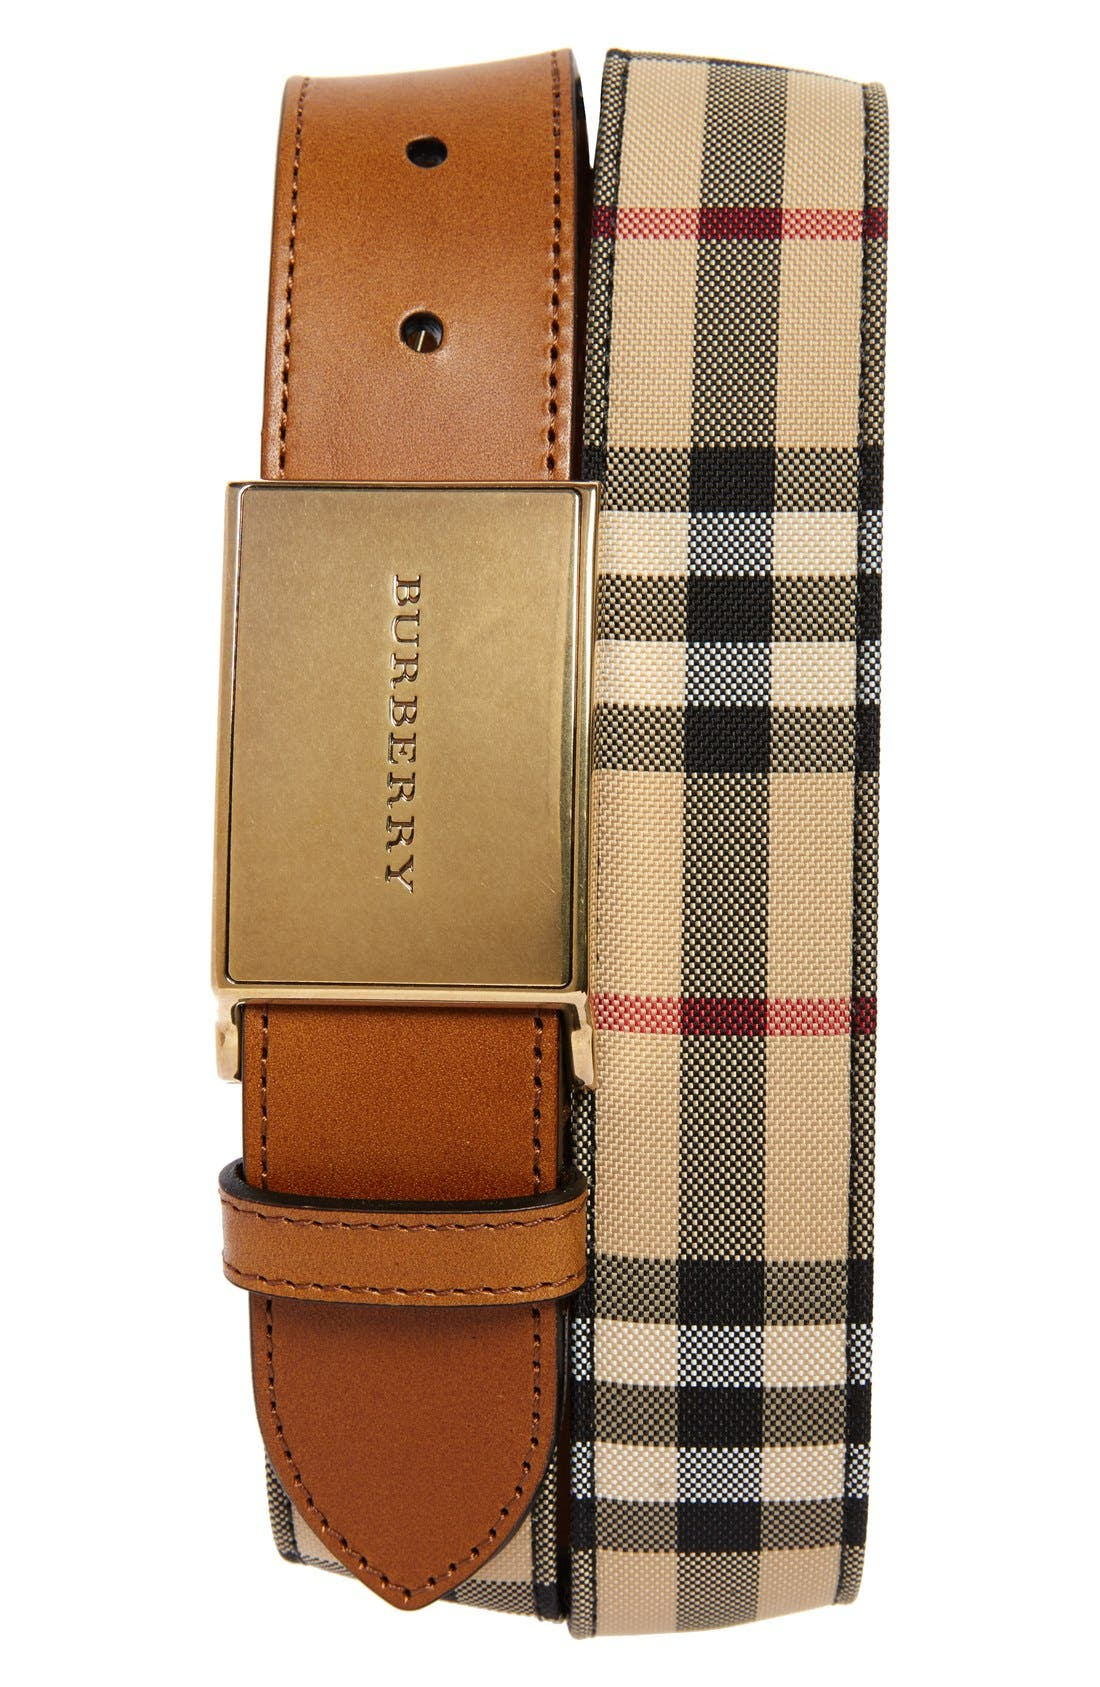 Burberry 'Charles' Belt